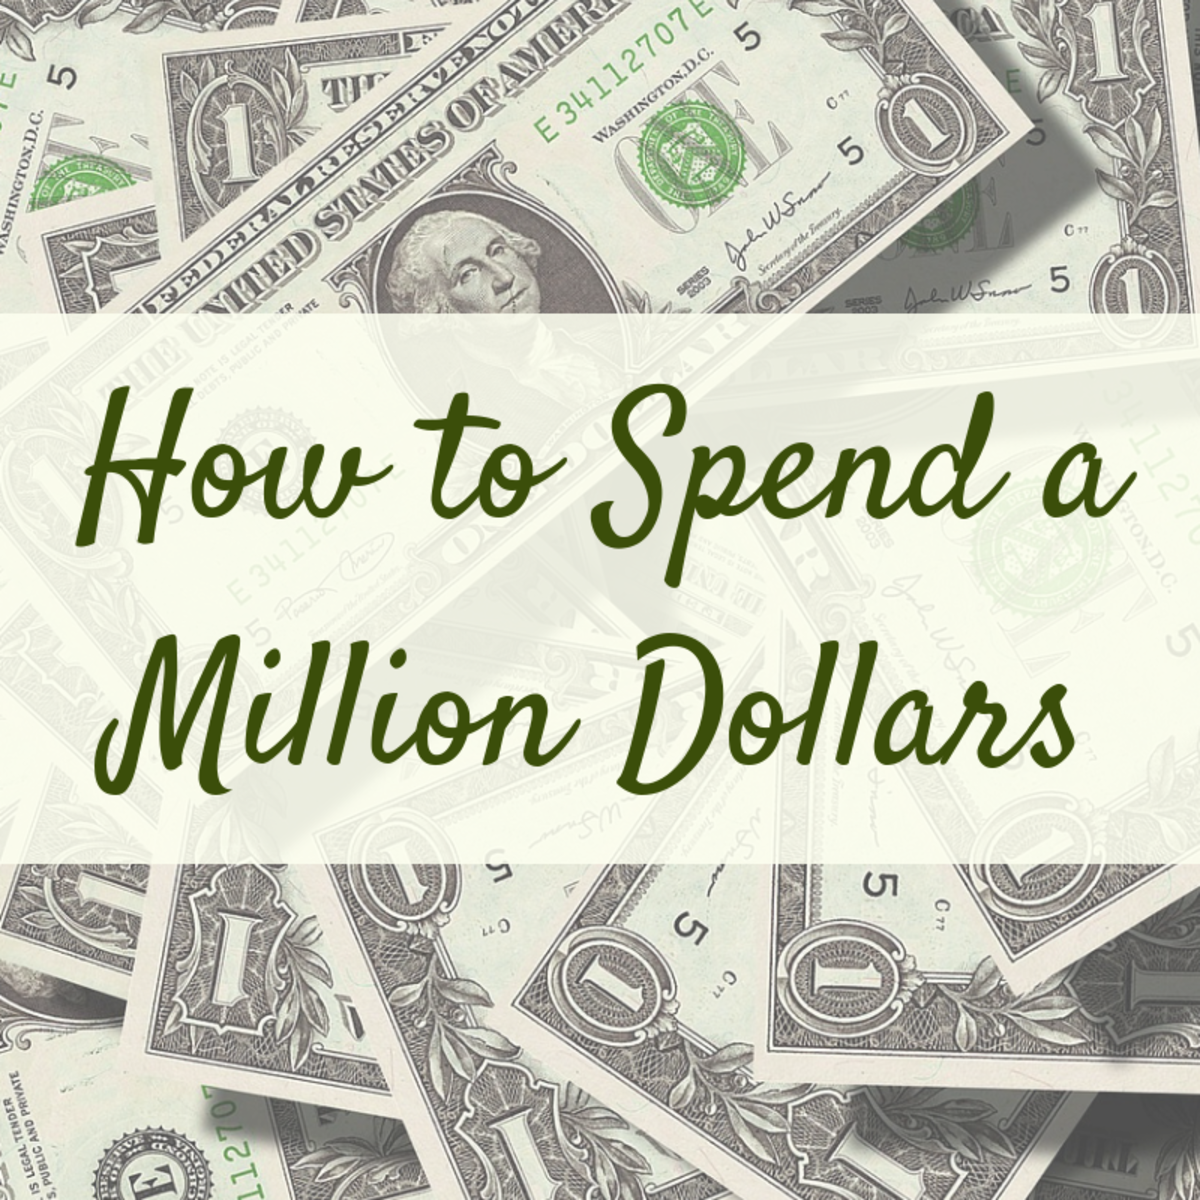 10 Great Things You Can Buy for a Million Dollars